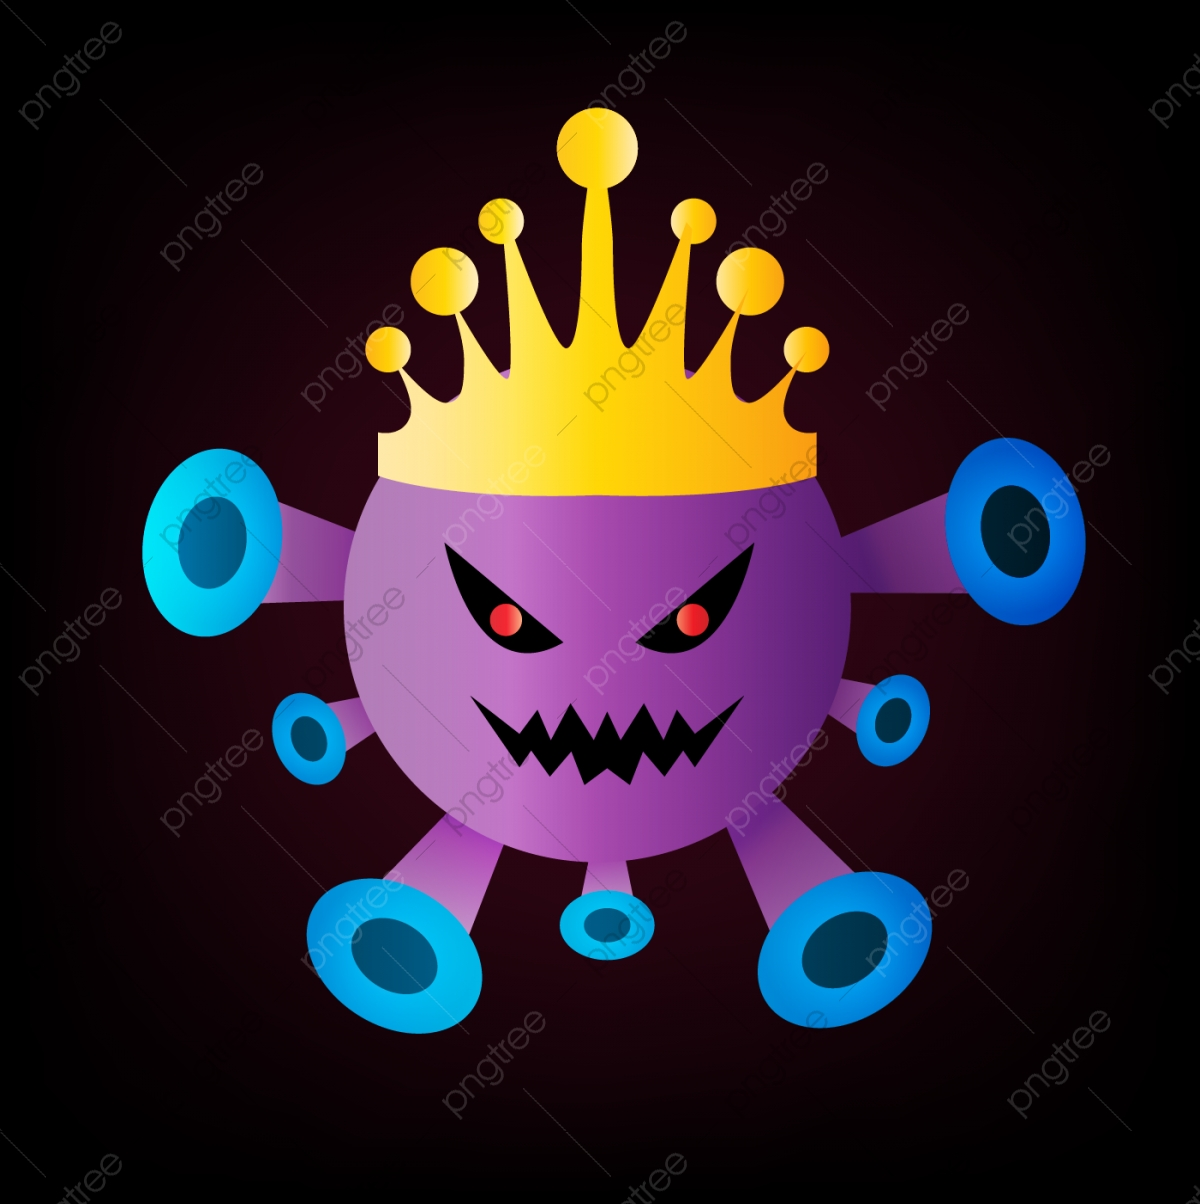 Crown King Covid 19 Corona Virus, Crown Icons, King Icons, Crown PNG and  Vector with Transparent Background for Free Download